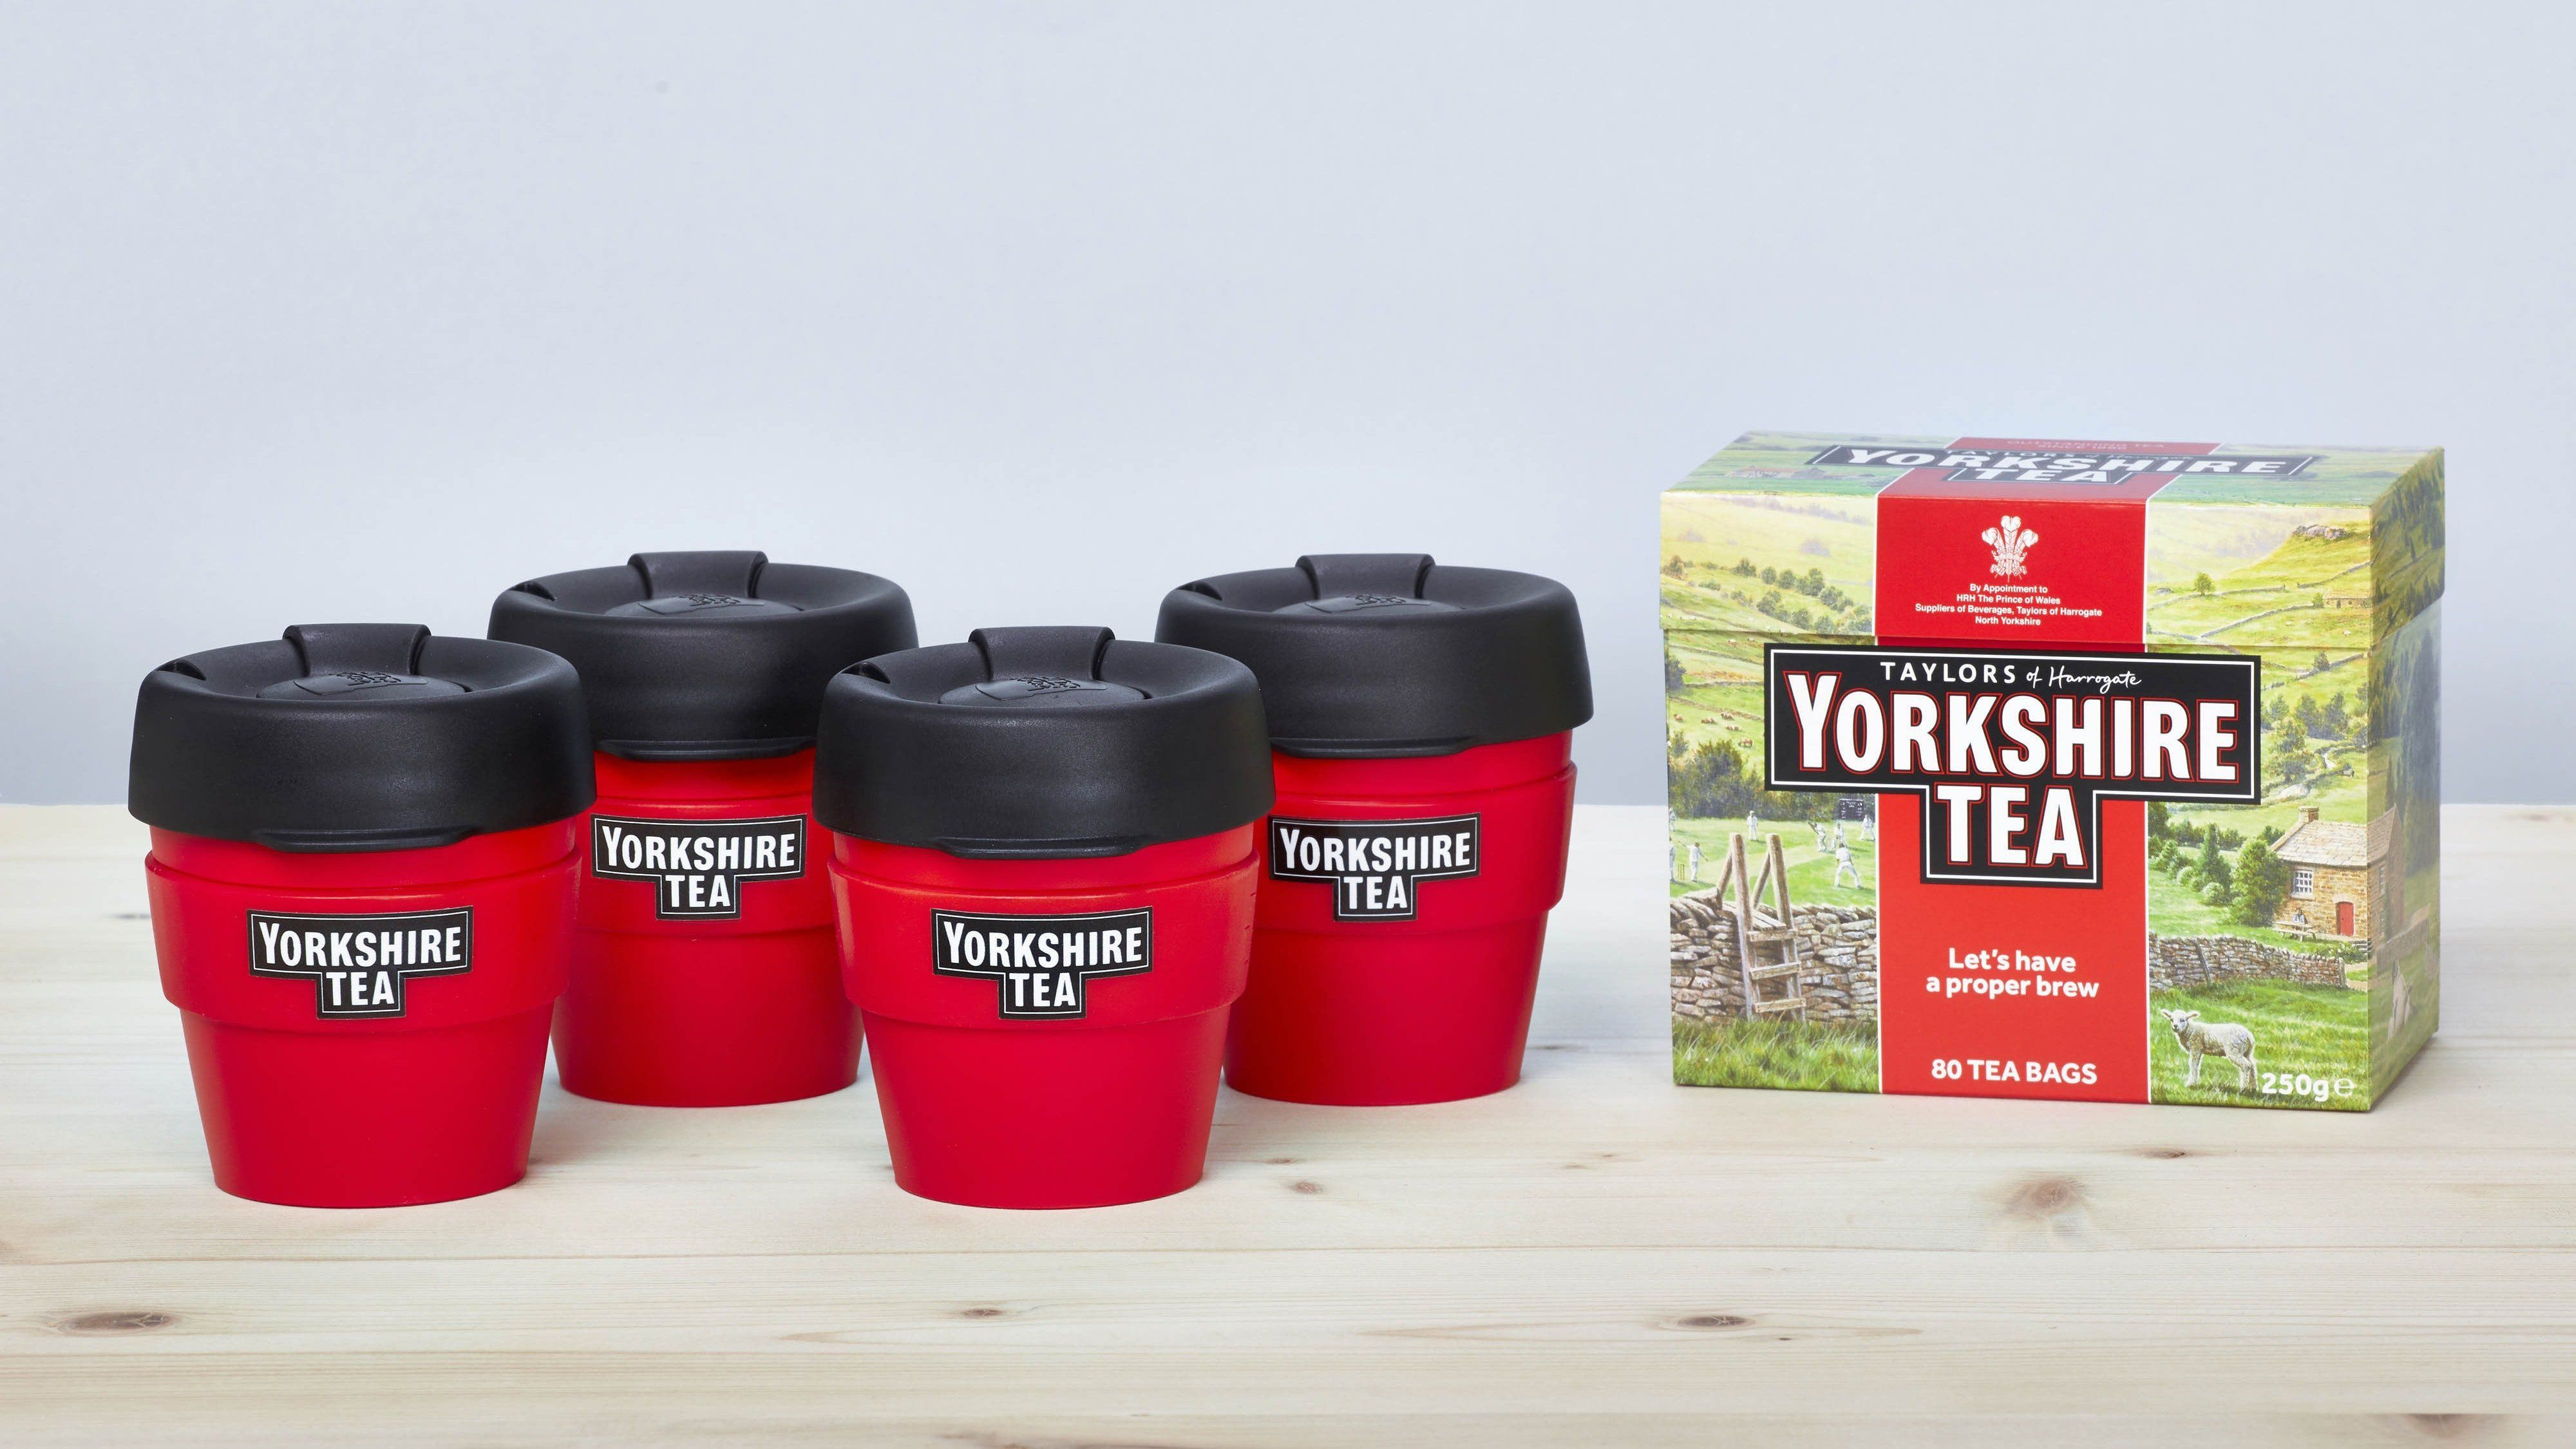 Yorkshire Tea's Biodegradable Teabags Are Falling Apart (And So Are